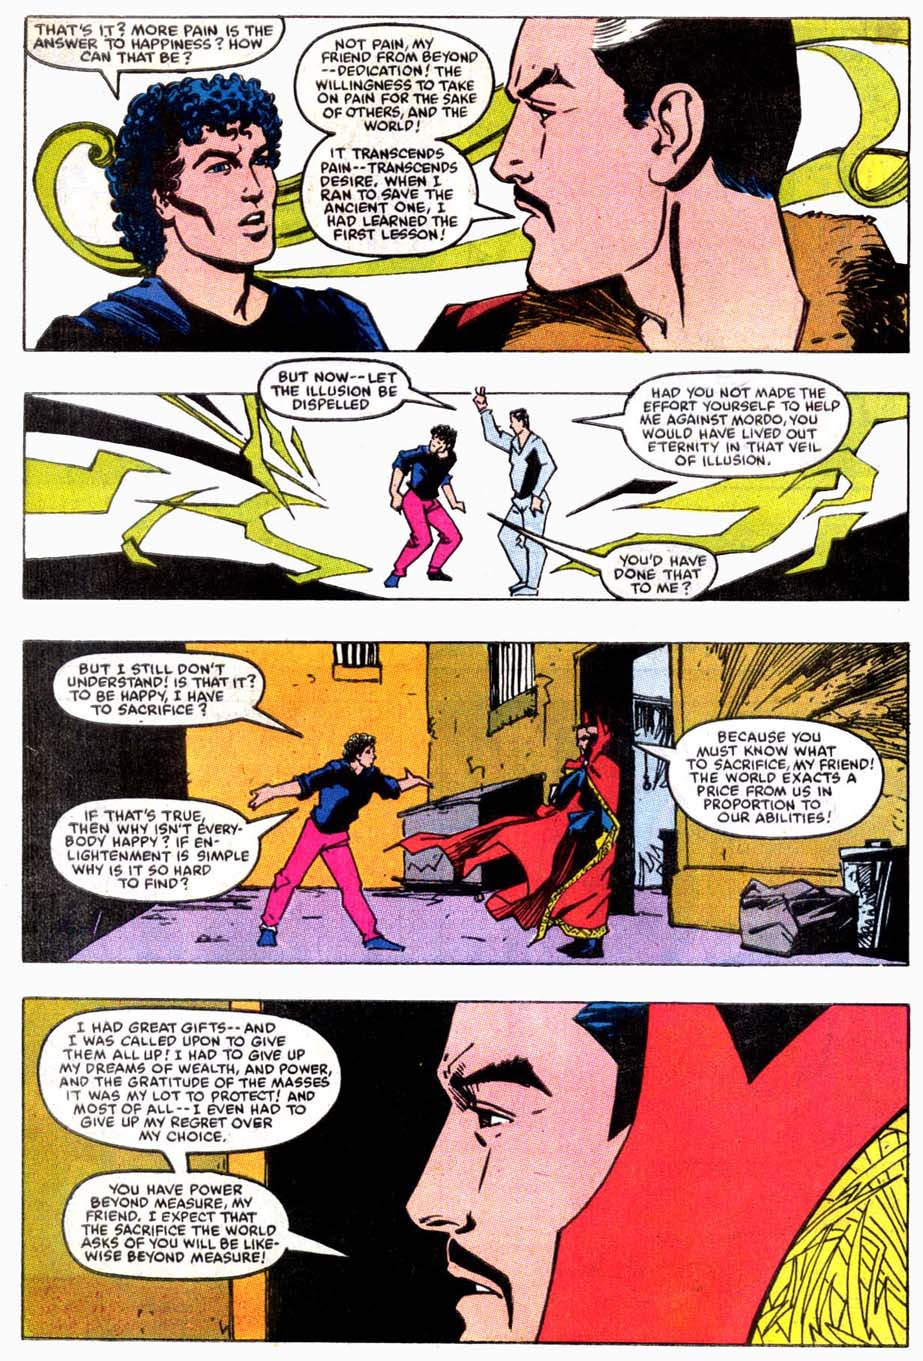 Doctor Strange (Classic) Fears Pre-Retcon Beyonder Rco02111